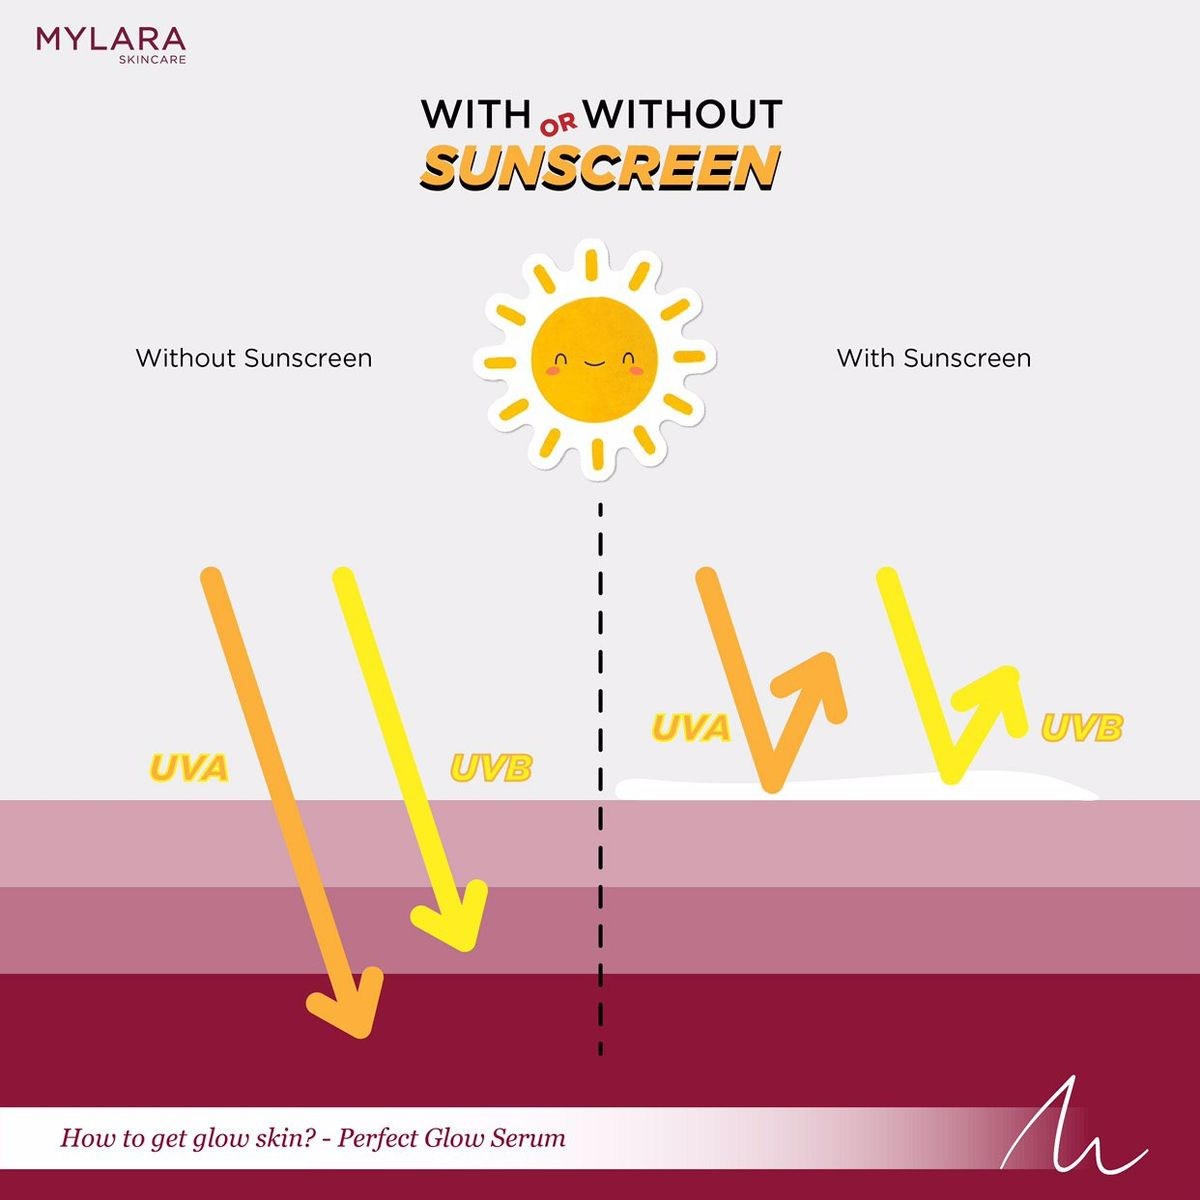 WITH OR WITHOUT SUNSCREEN